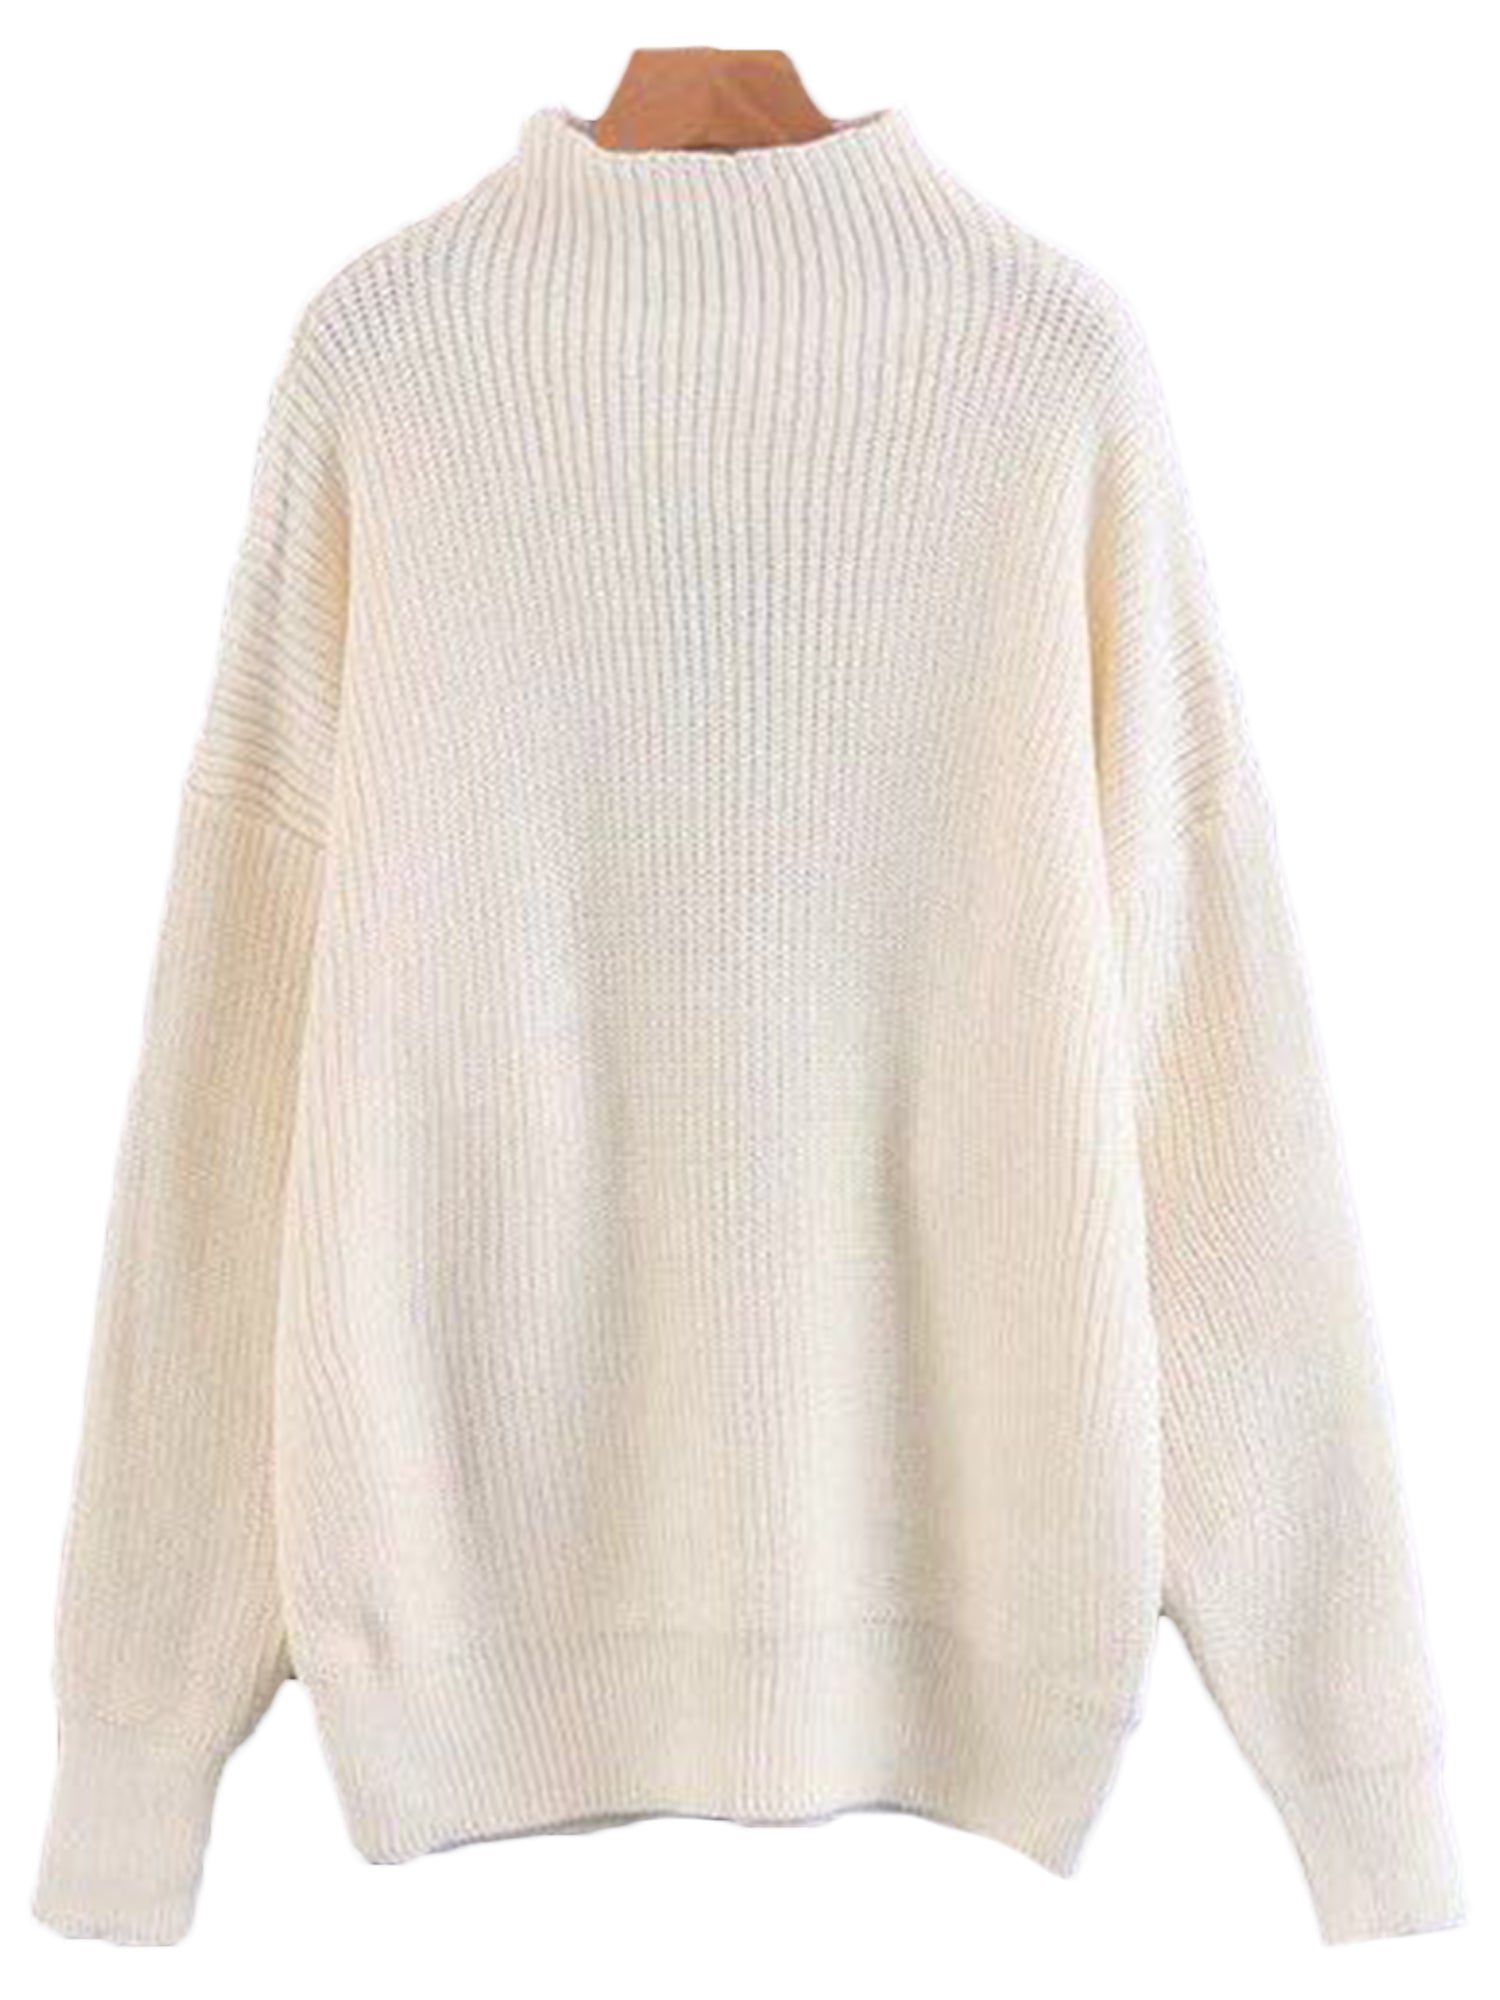 'Thelma' High-neck Knitted Sweater (4 Colors)